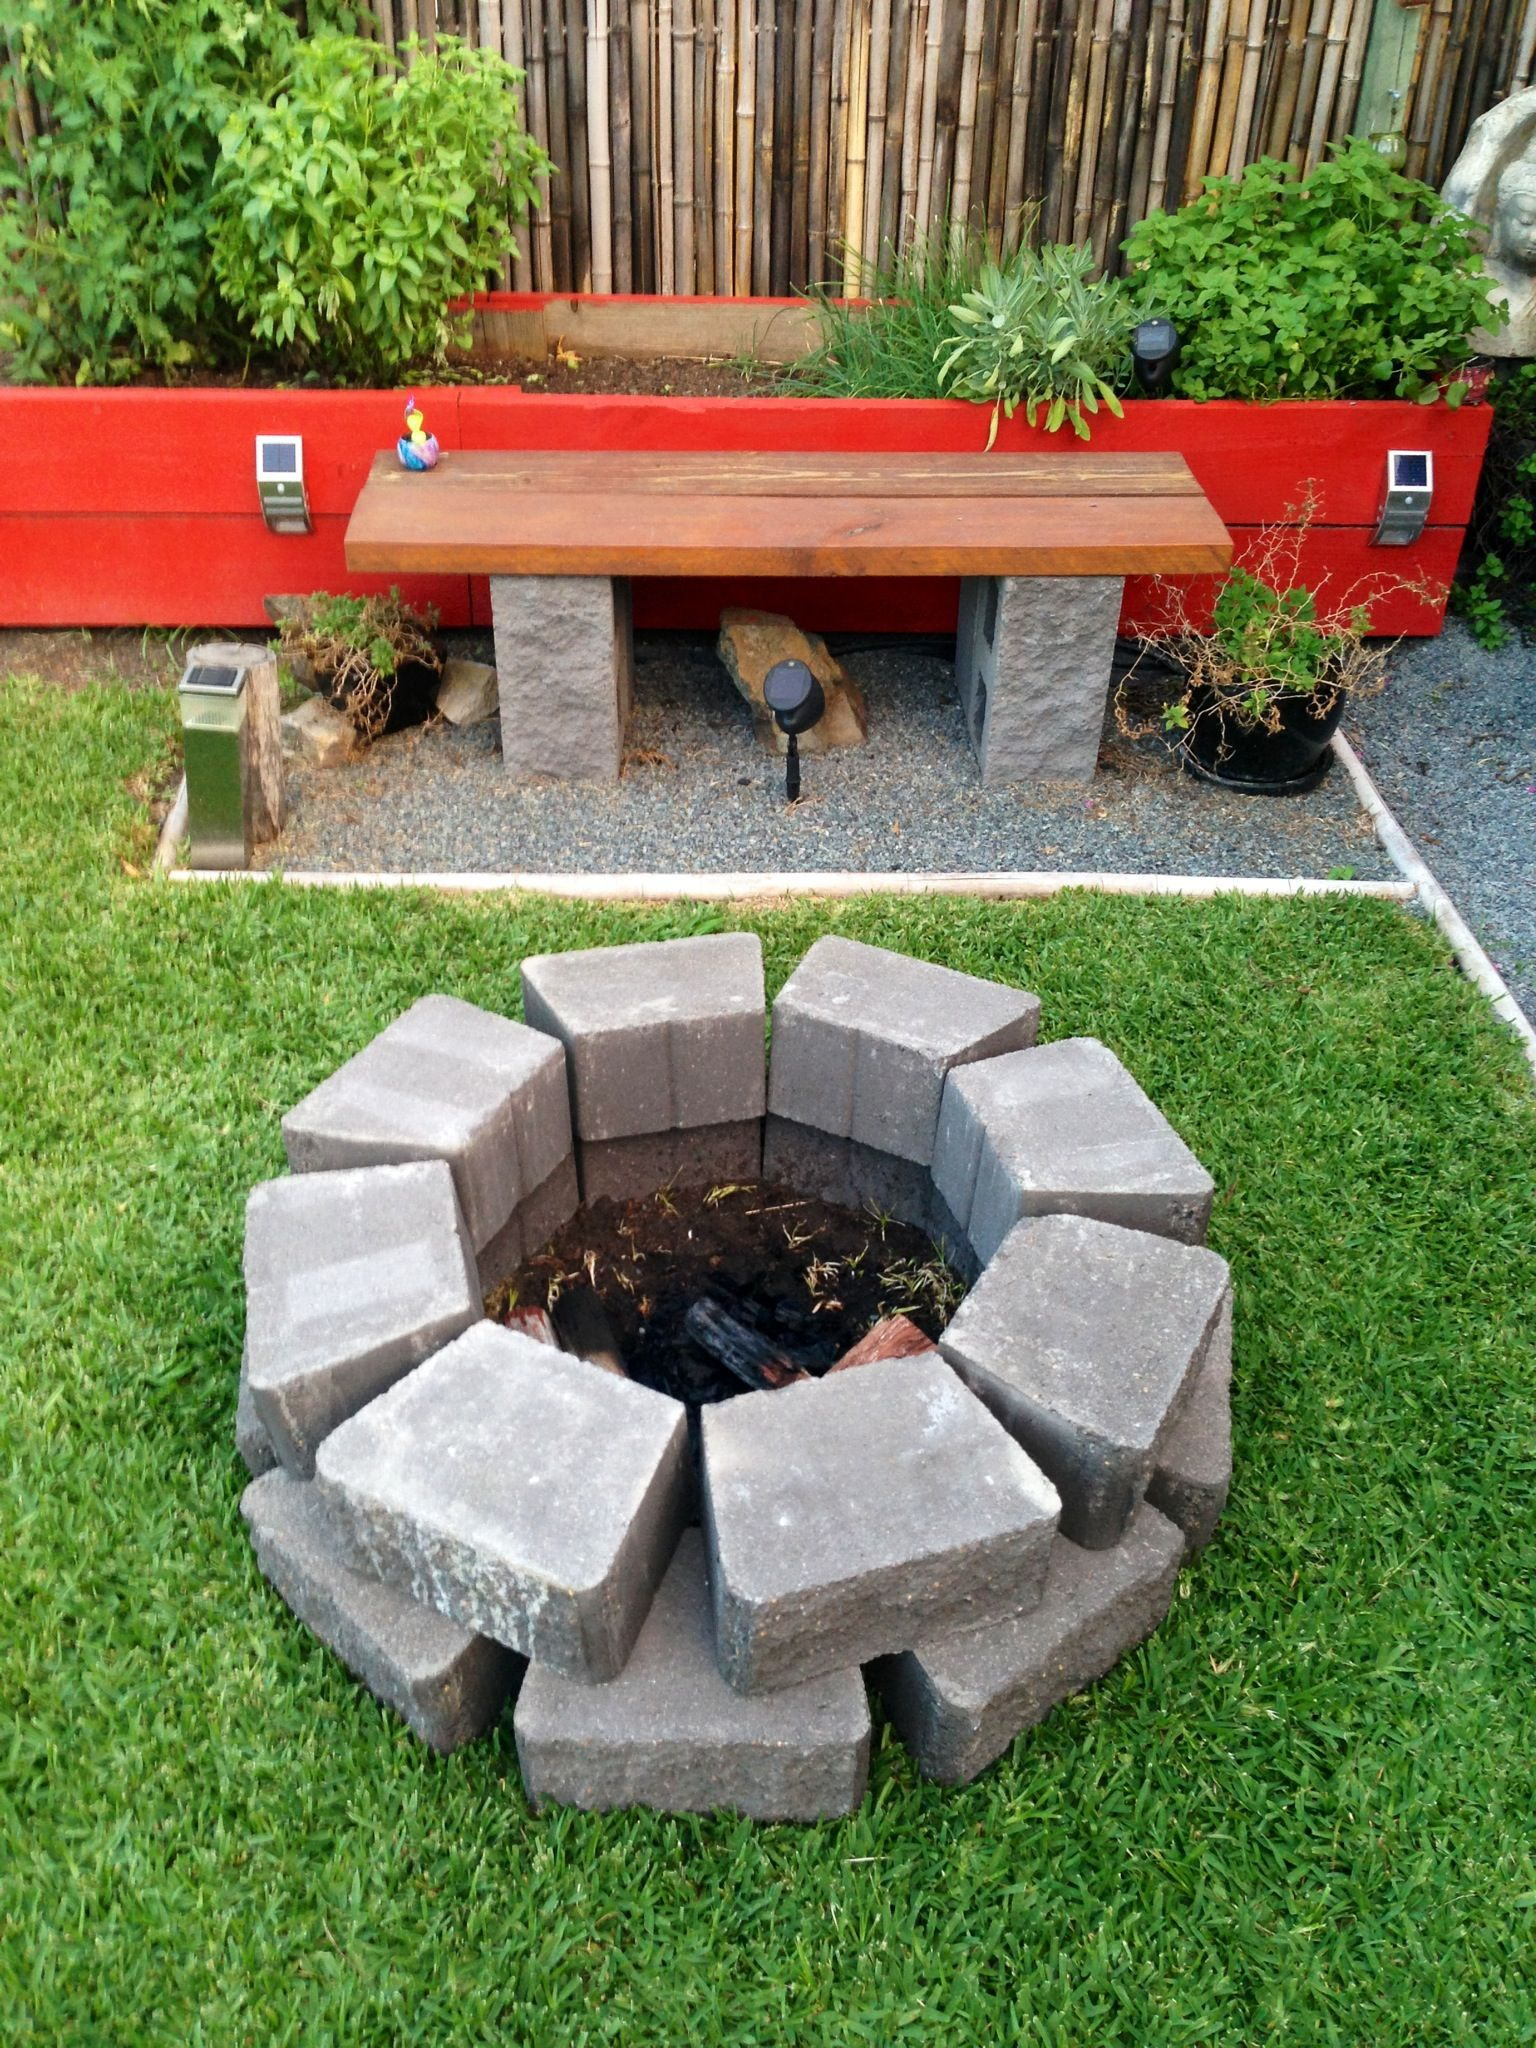 backyard fire pit cost 40 and took 20 minutes to make made from